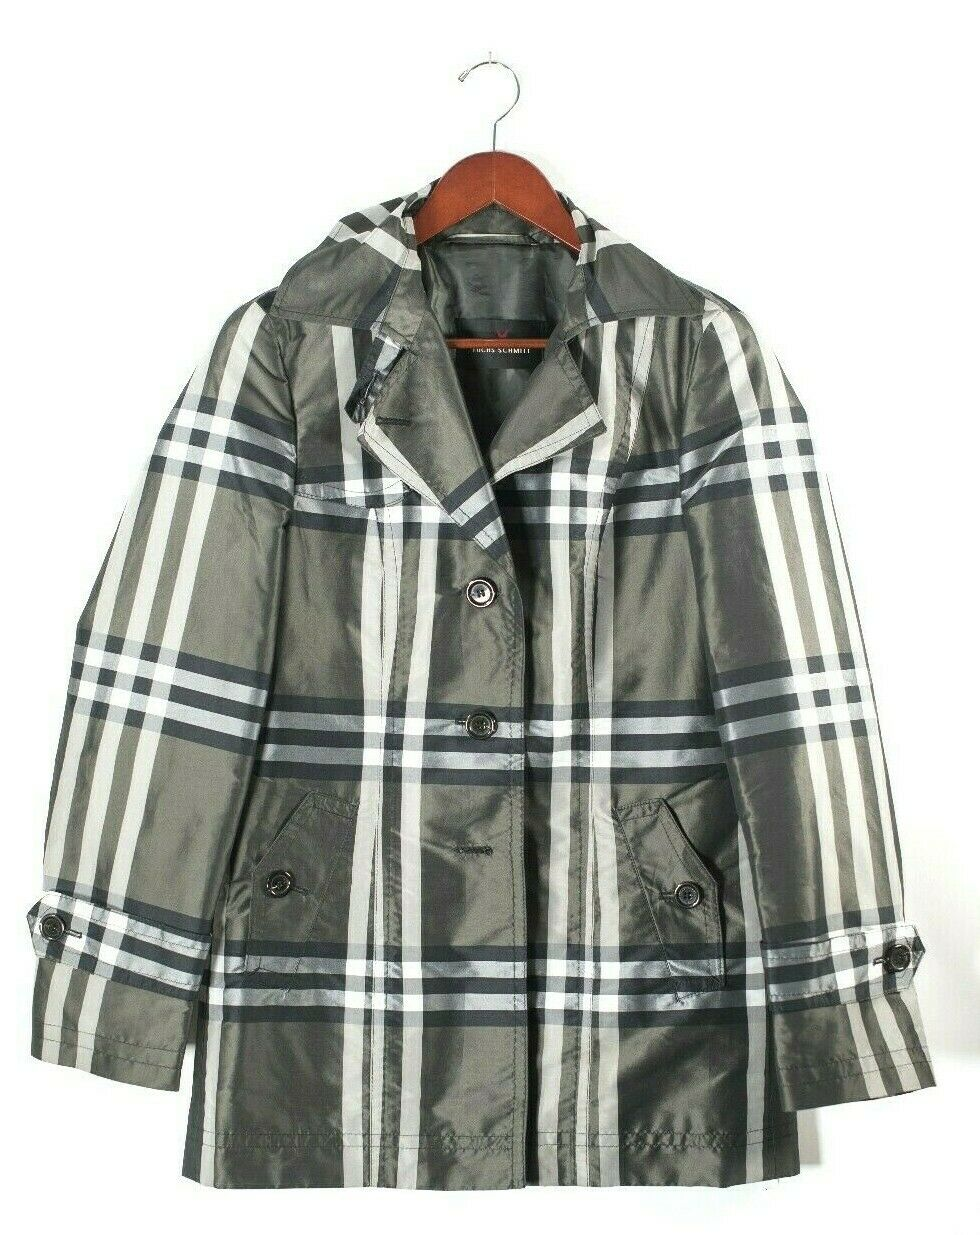 Fuchs Schmitt Womens Medium Olive Green Raincoat Plaid Nylon Short Trench Jacket